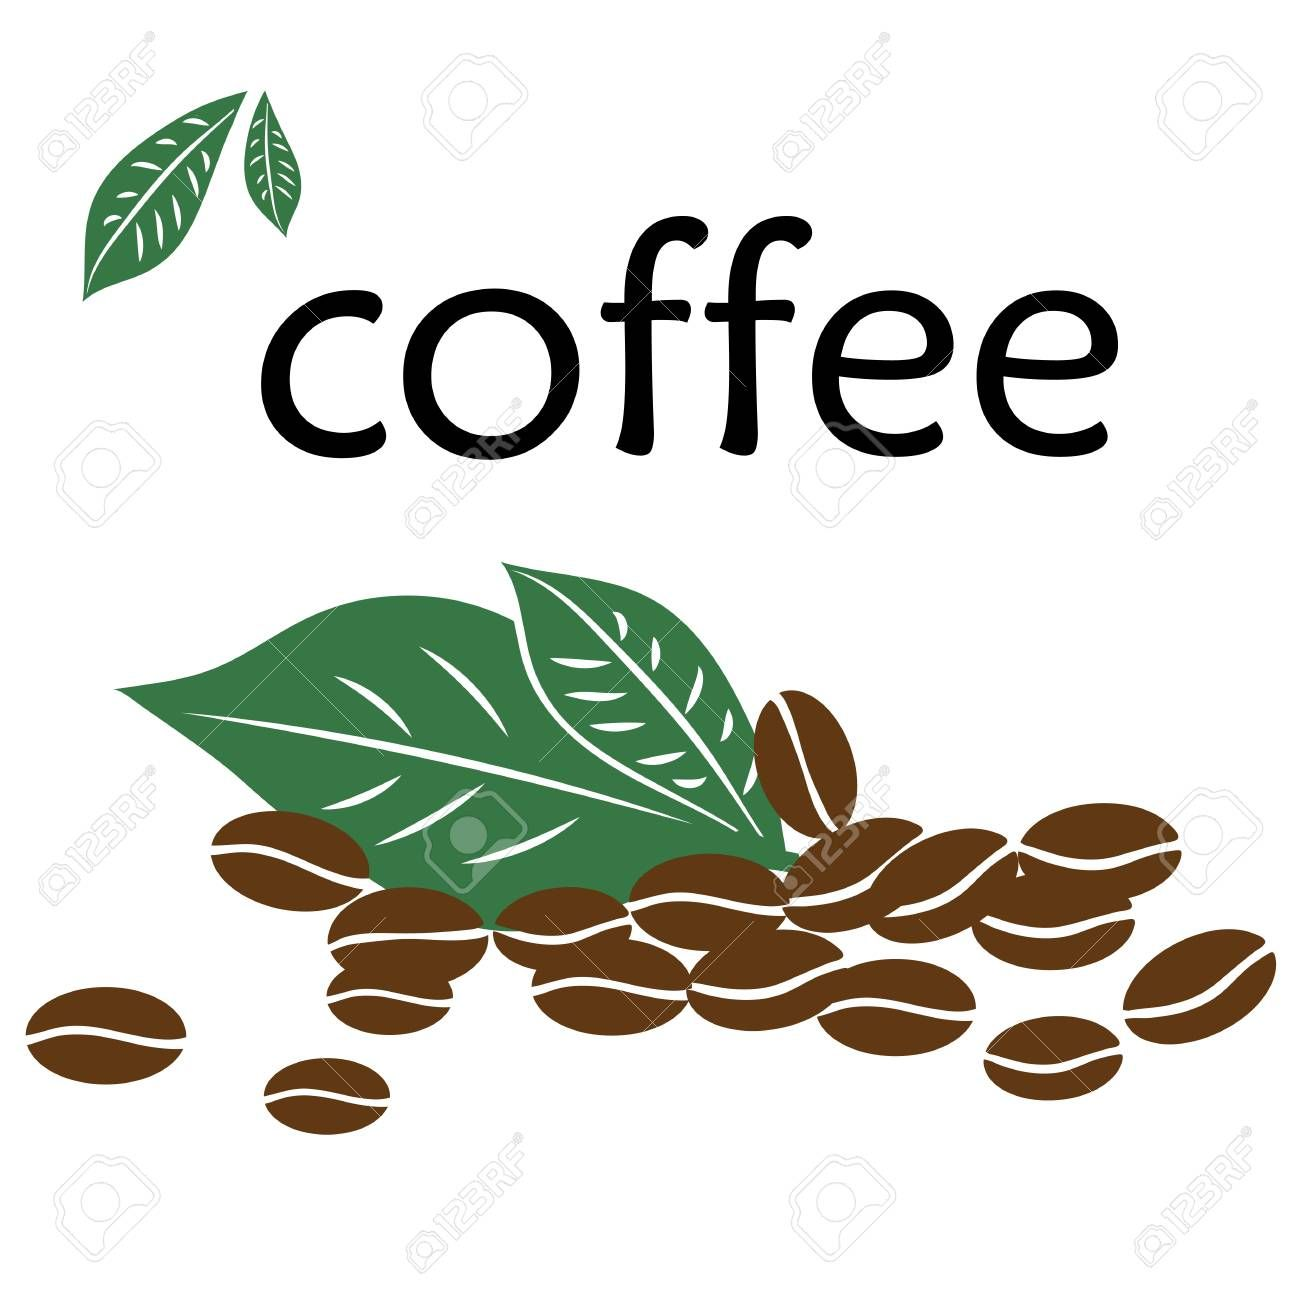 Coffee Beans With Leaves Sponsored Coffee Beans Leaves Plant Leaves Coffee Beans Plants